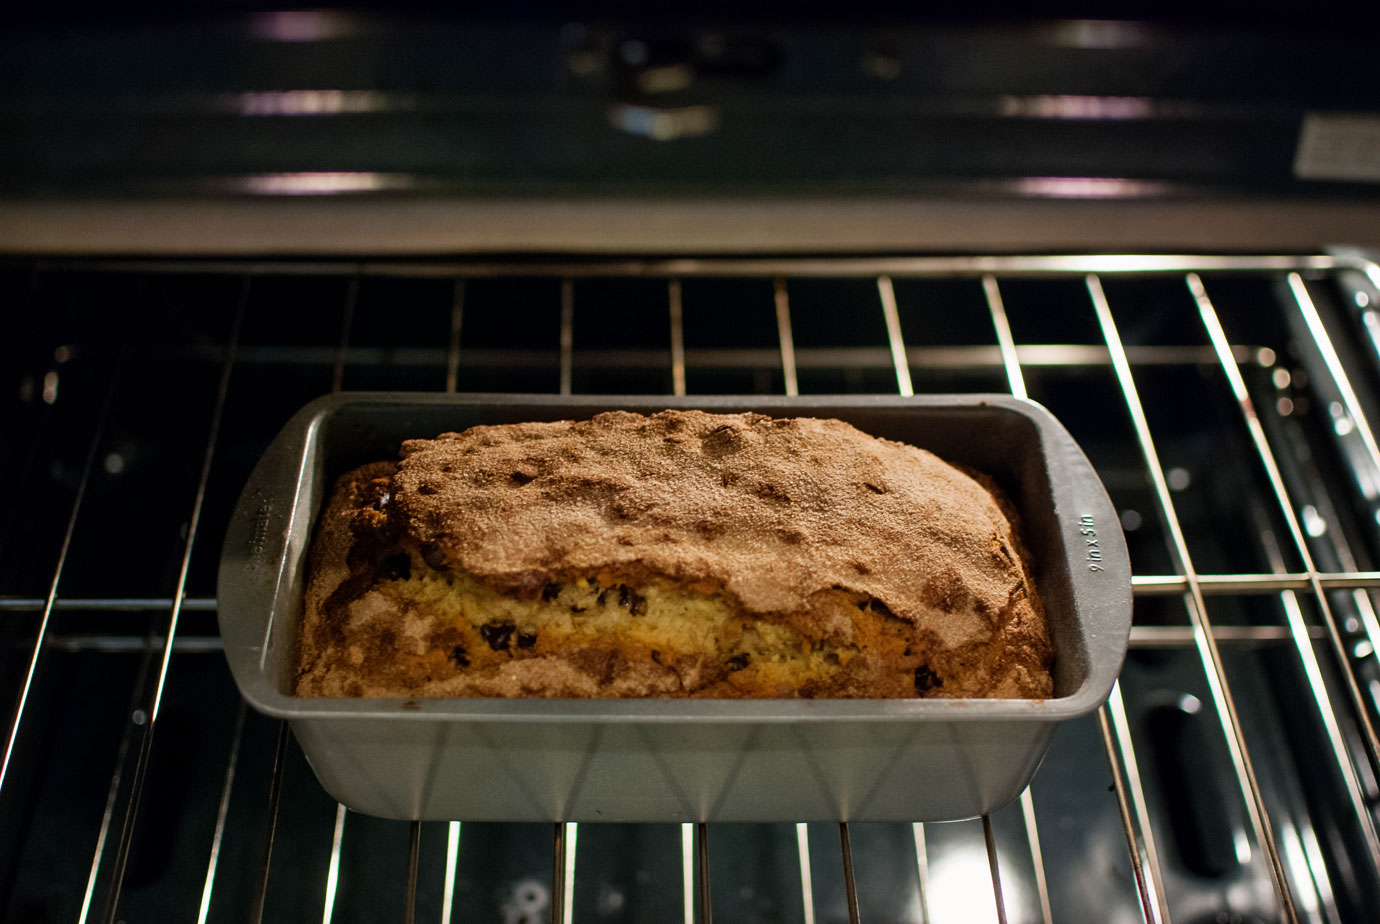 Check The Banana Bread With A Toothpick Before Removing From The Oven